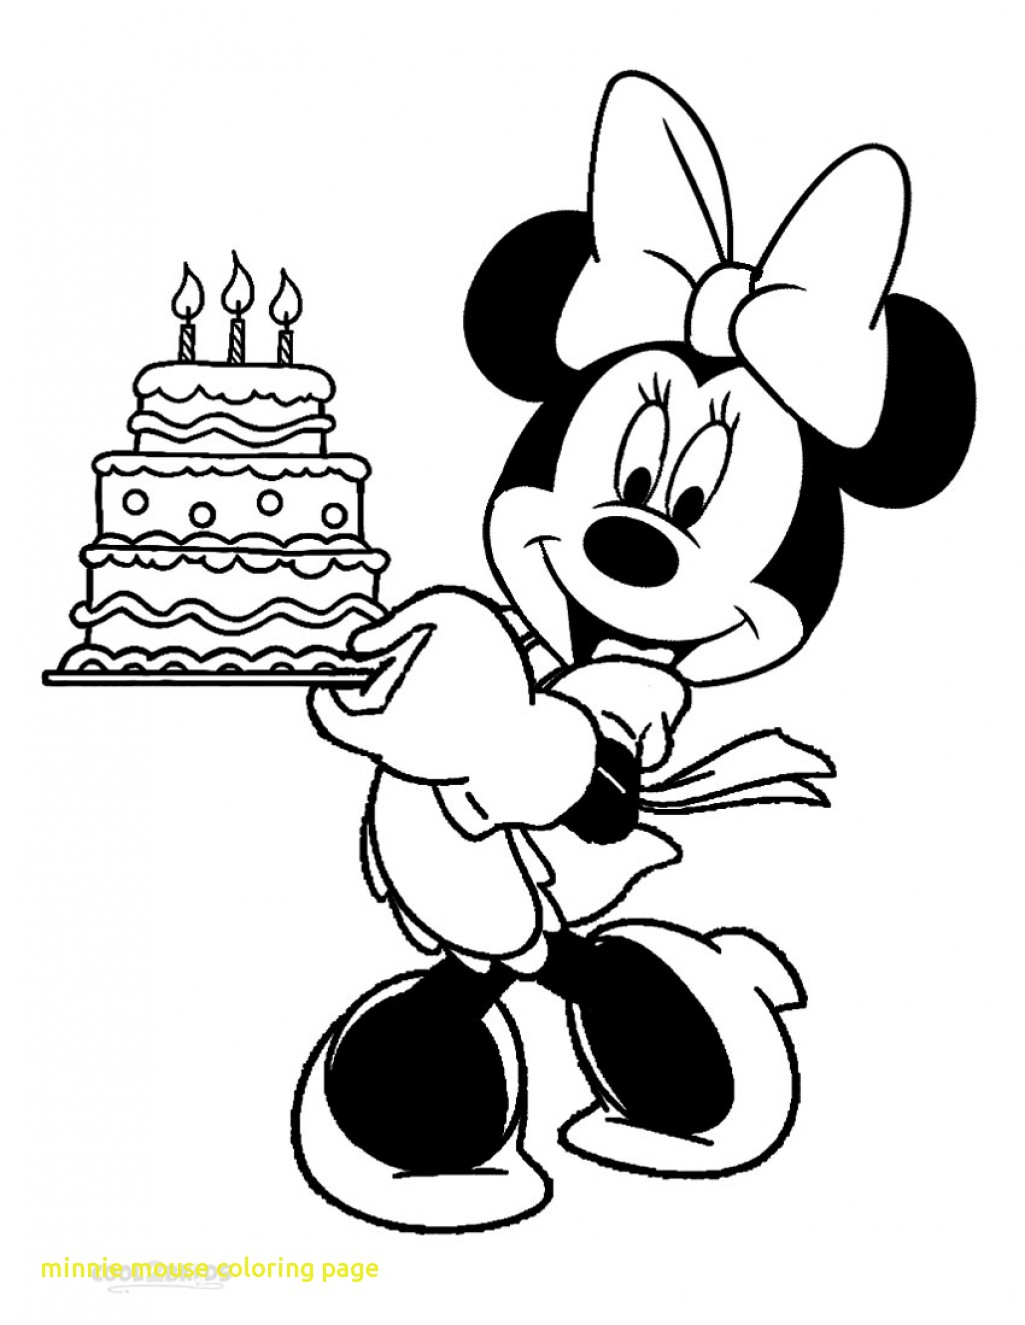 minnie mouse birthday coloring pages ; minnie-mouse-coloring-page-with-free-disney-minnie-mouse-coloring-pages-mickey-mouse-birthday-of-minnie-mouse-coloring-page